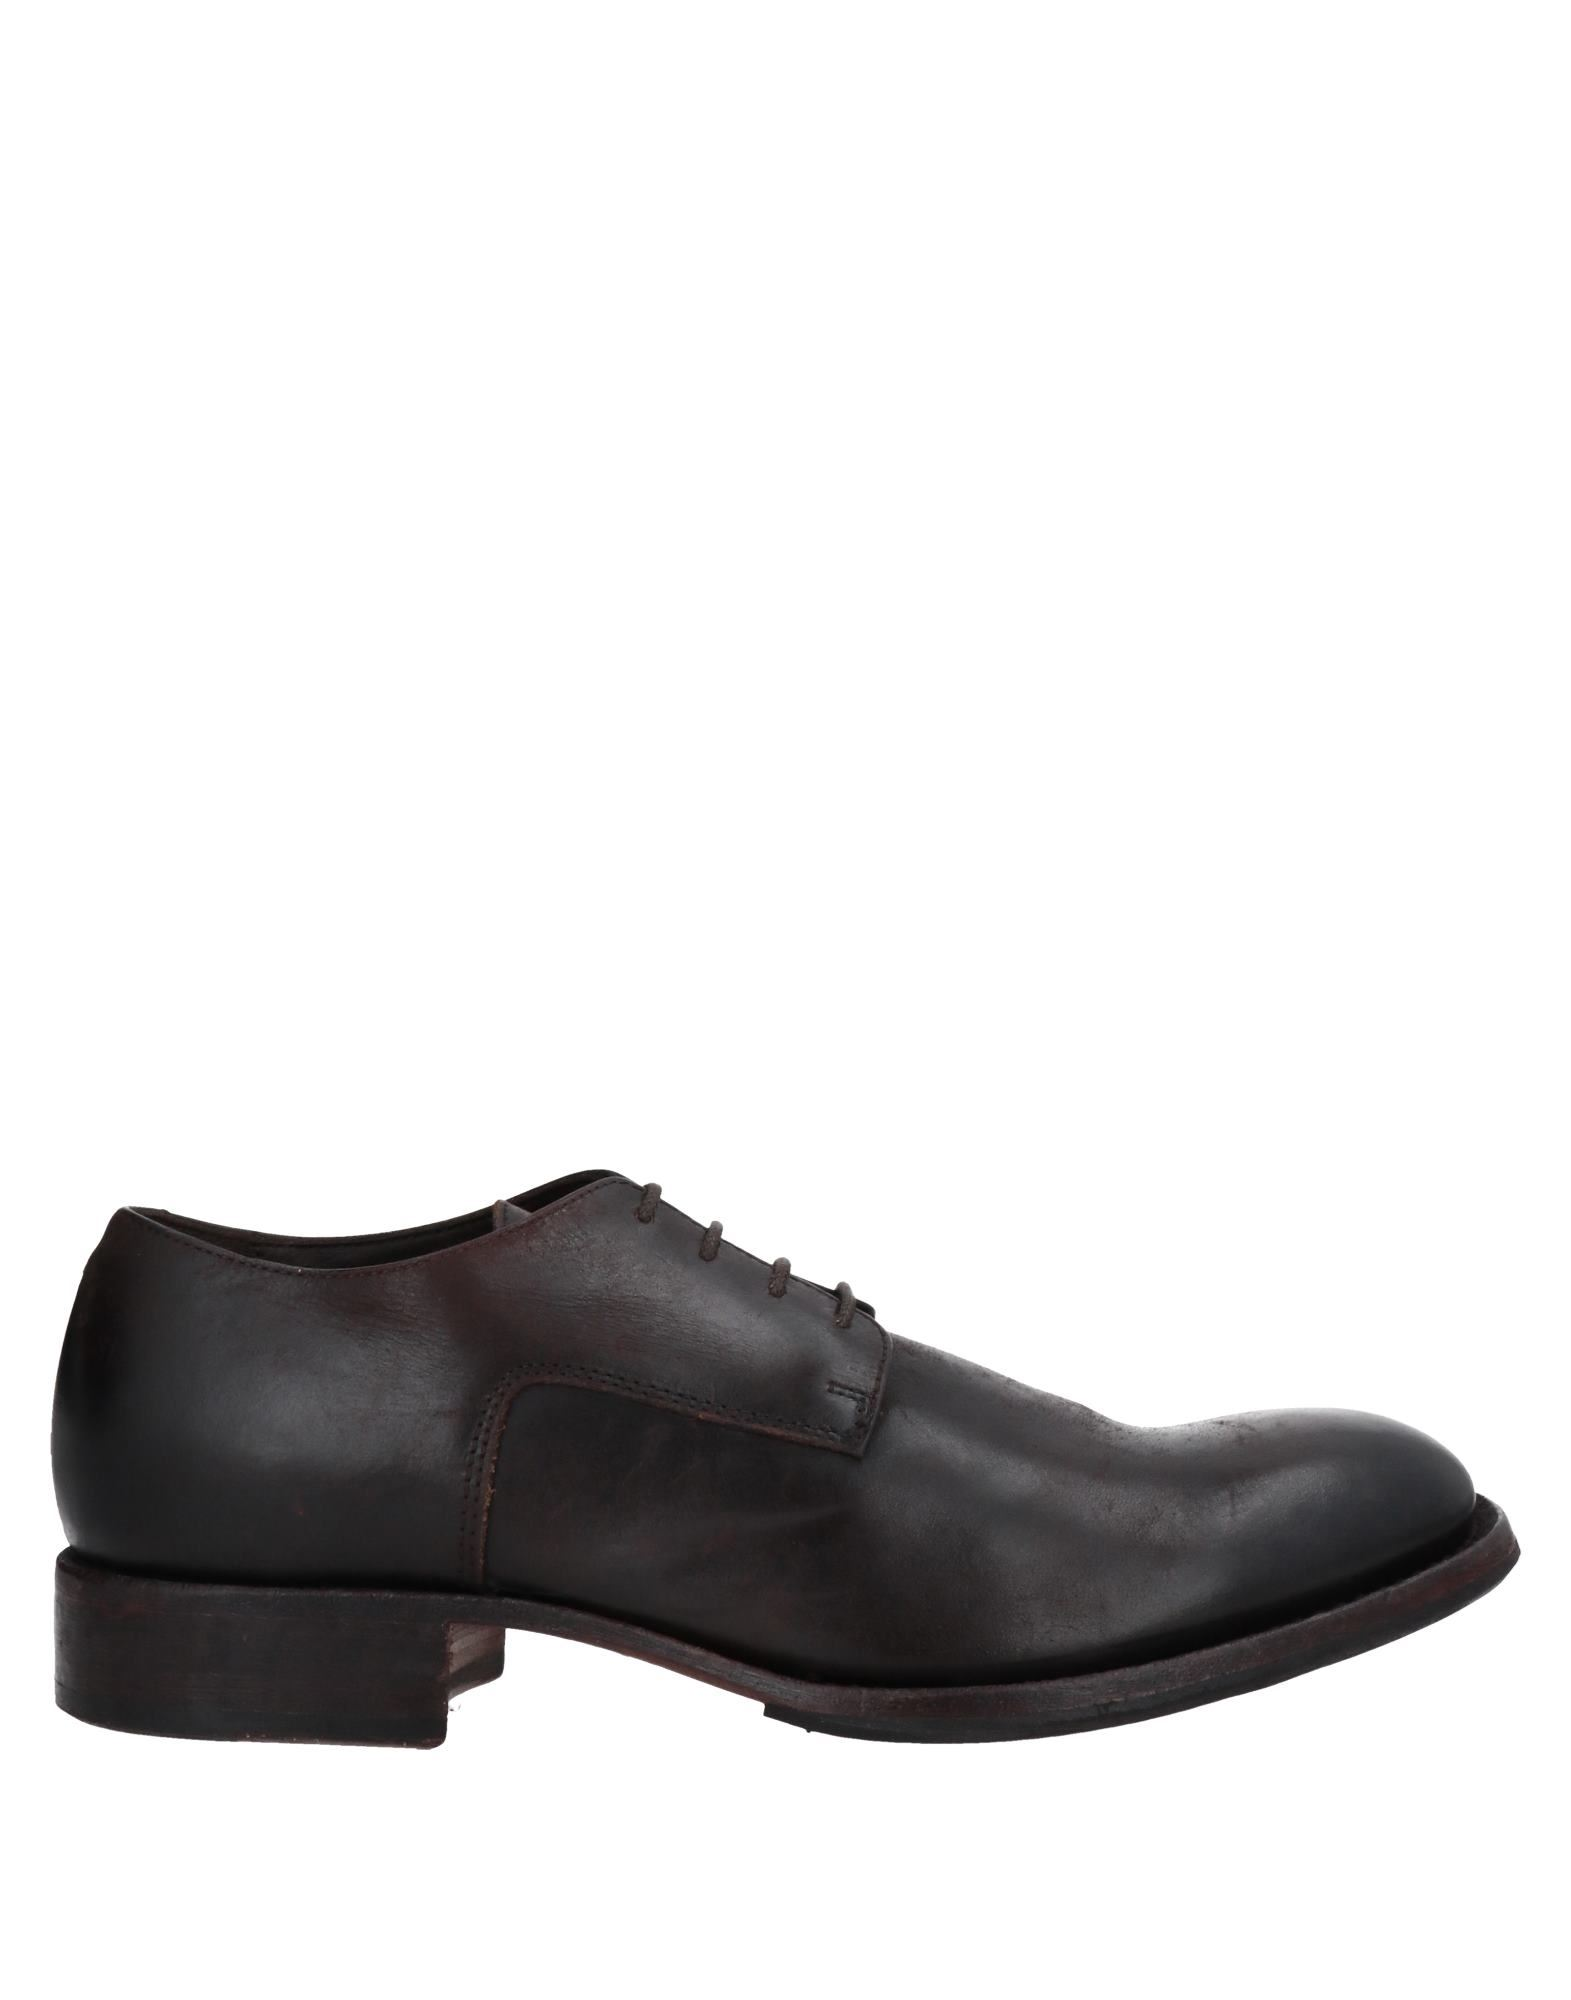 Bcc:'ed Blind Carbon Copied Lace-up Shoes In Dark Brown